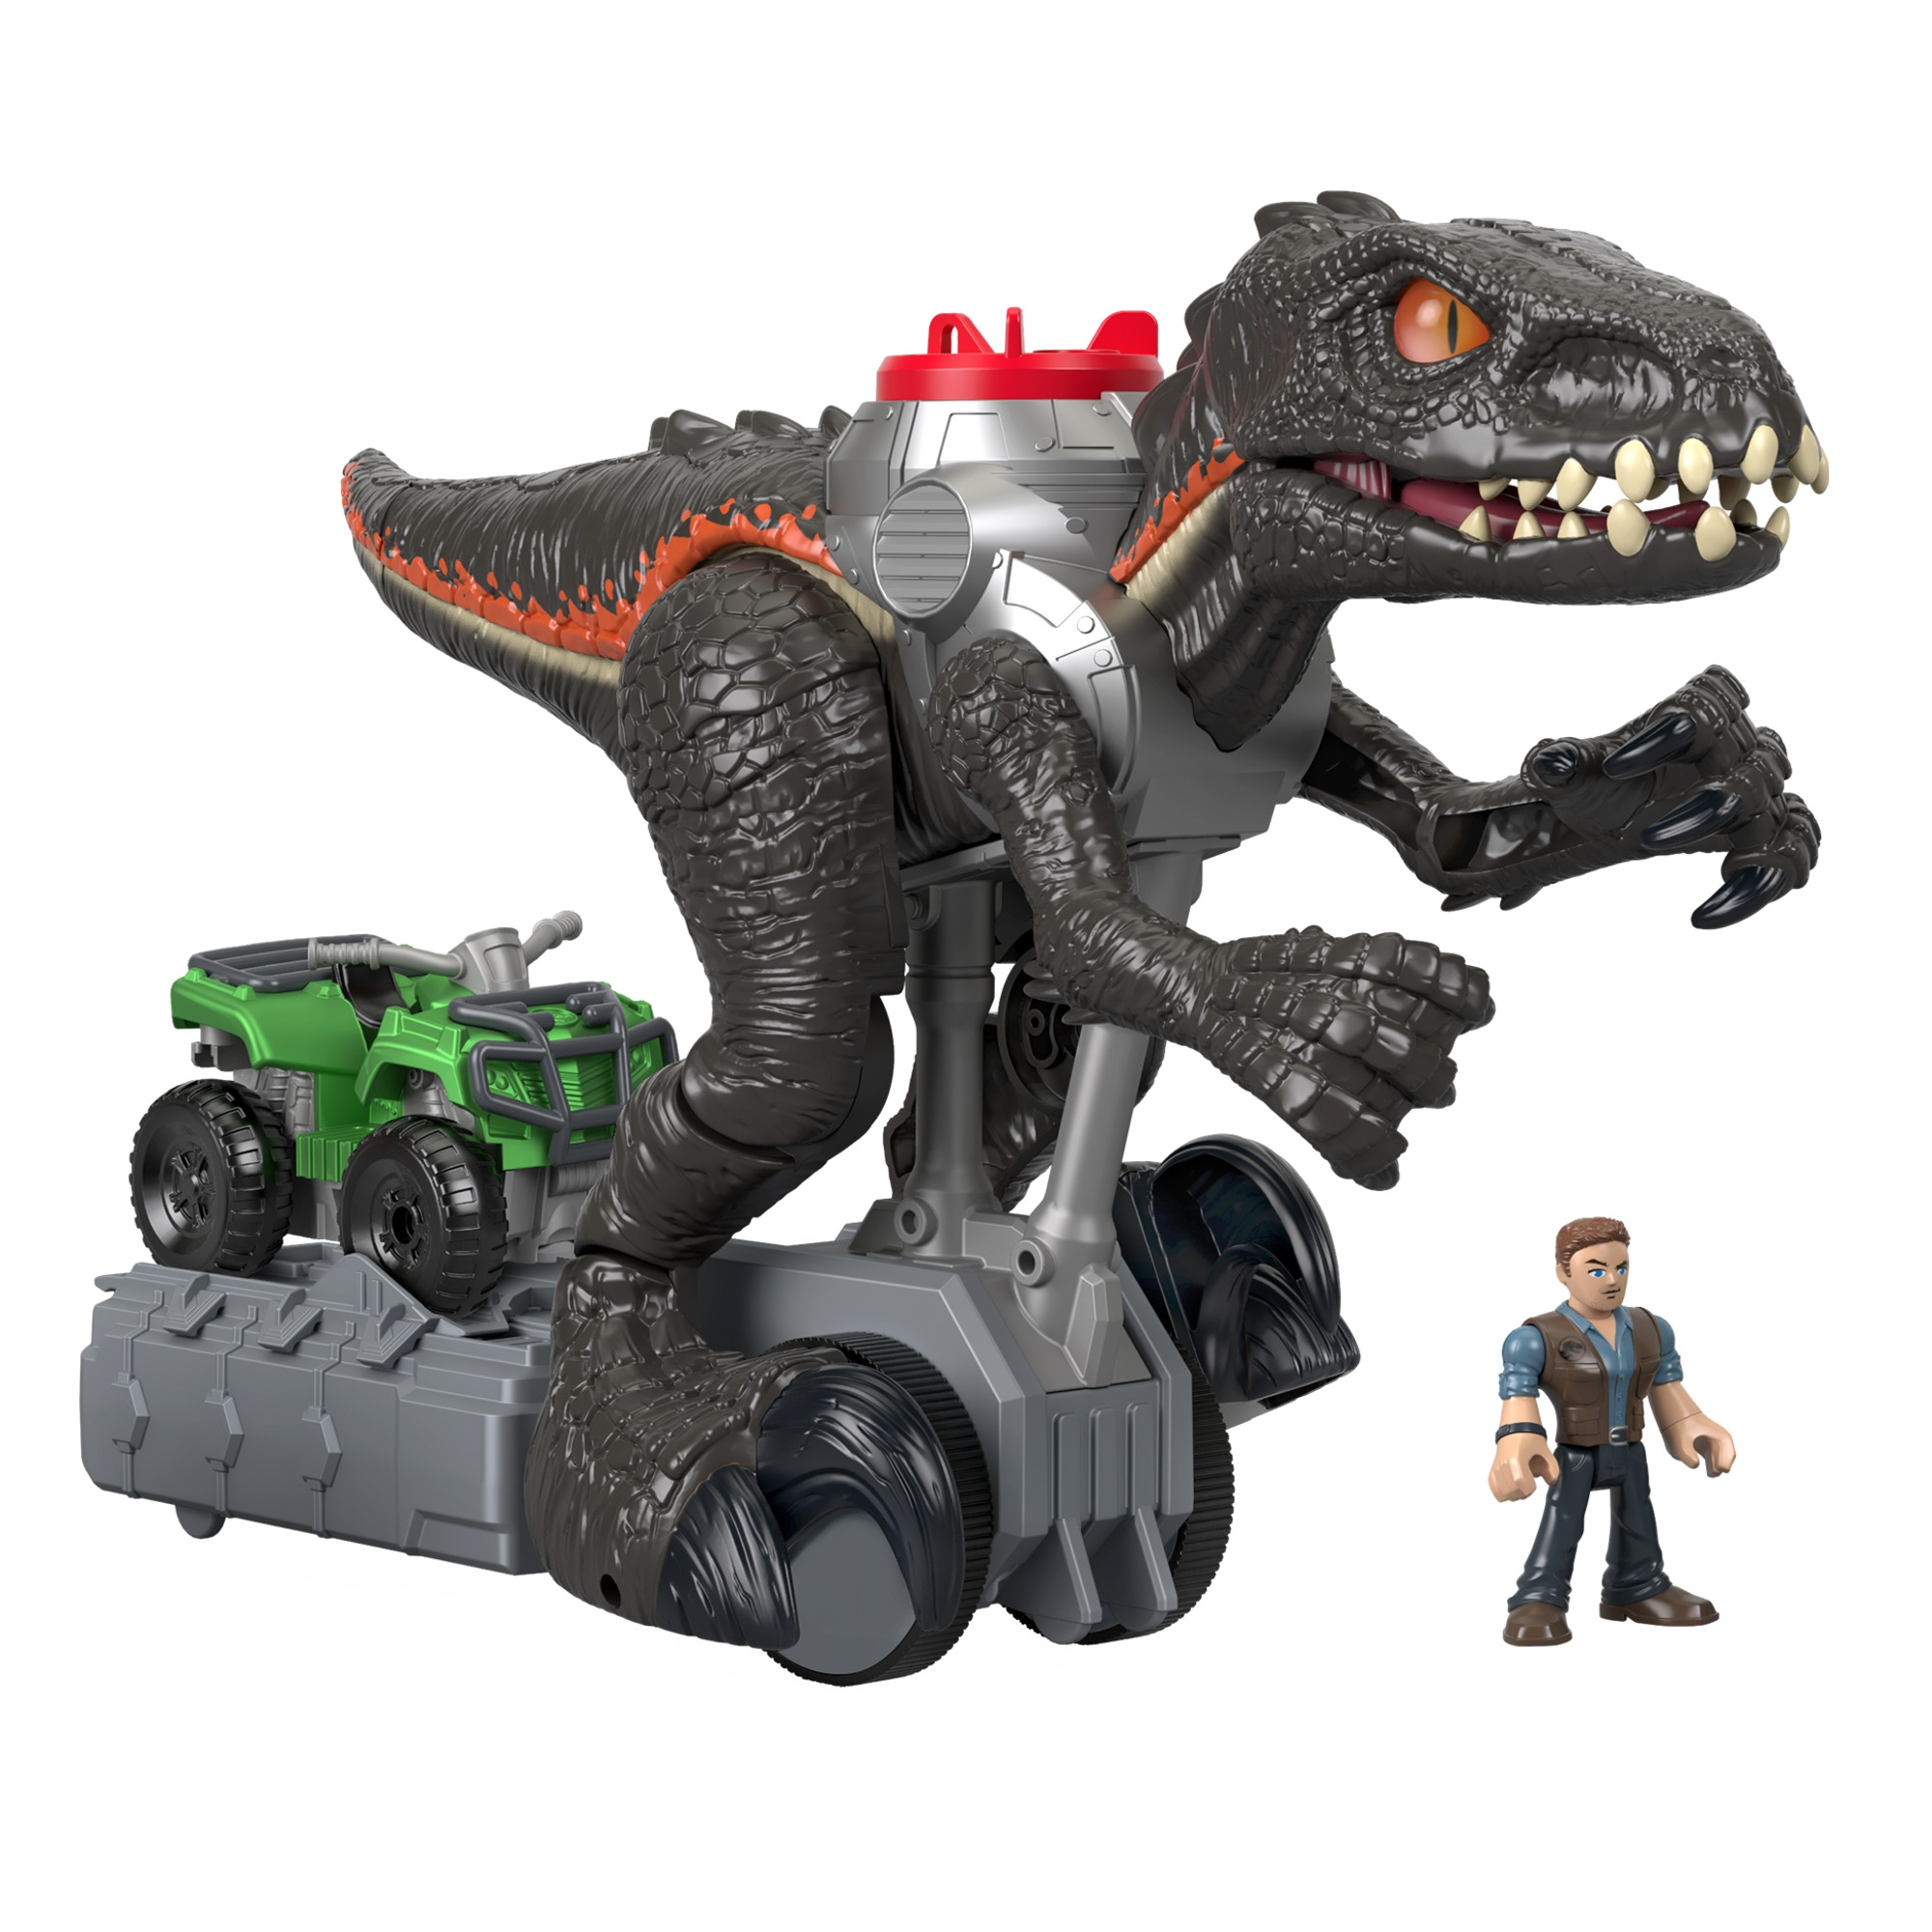 Imaginext Jurassic World Walking Indoraptor